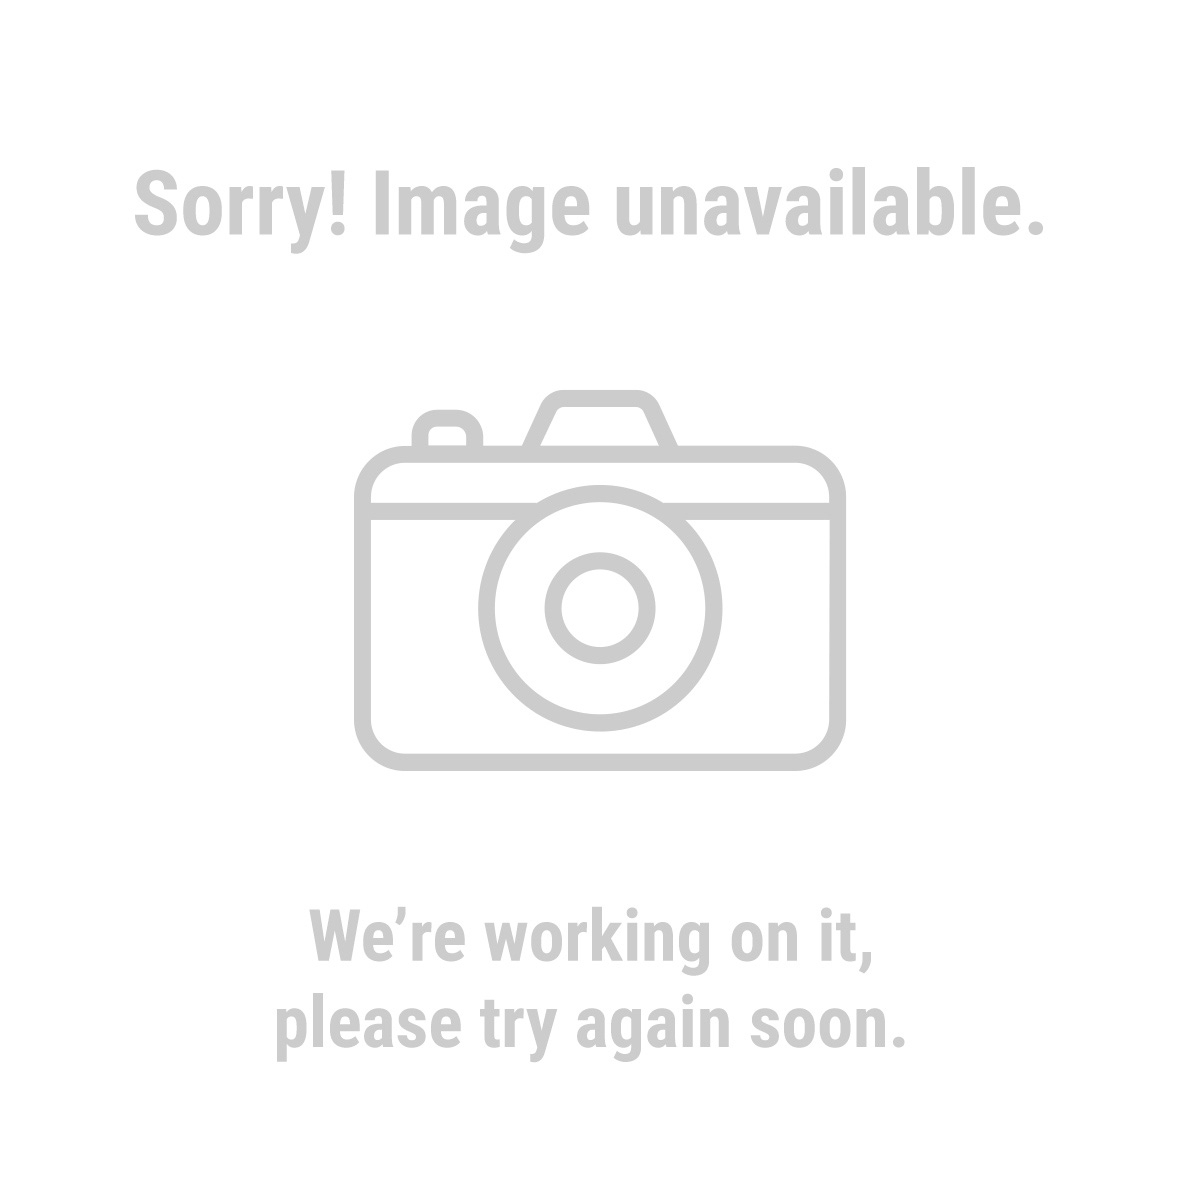 Haul-Master 69779 1500 Lb. Capacity Dual Wheel Swing-Back Boat Trailer Jack